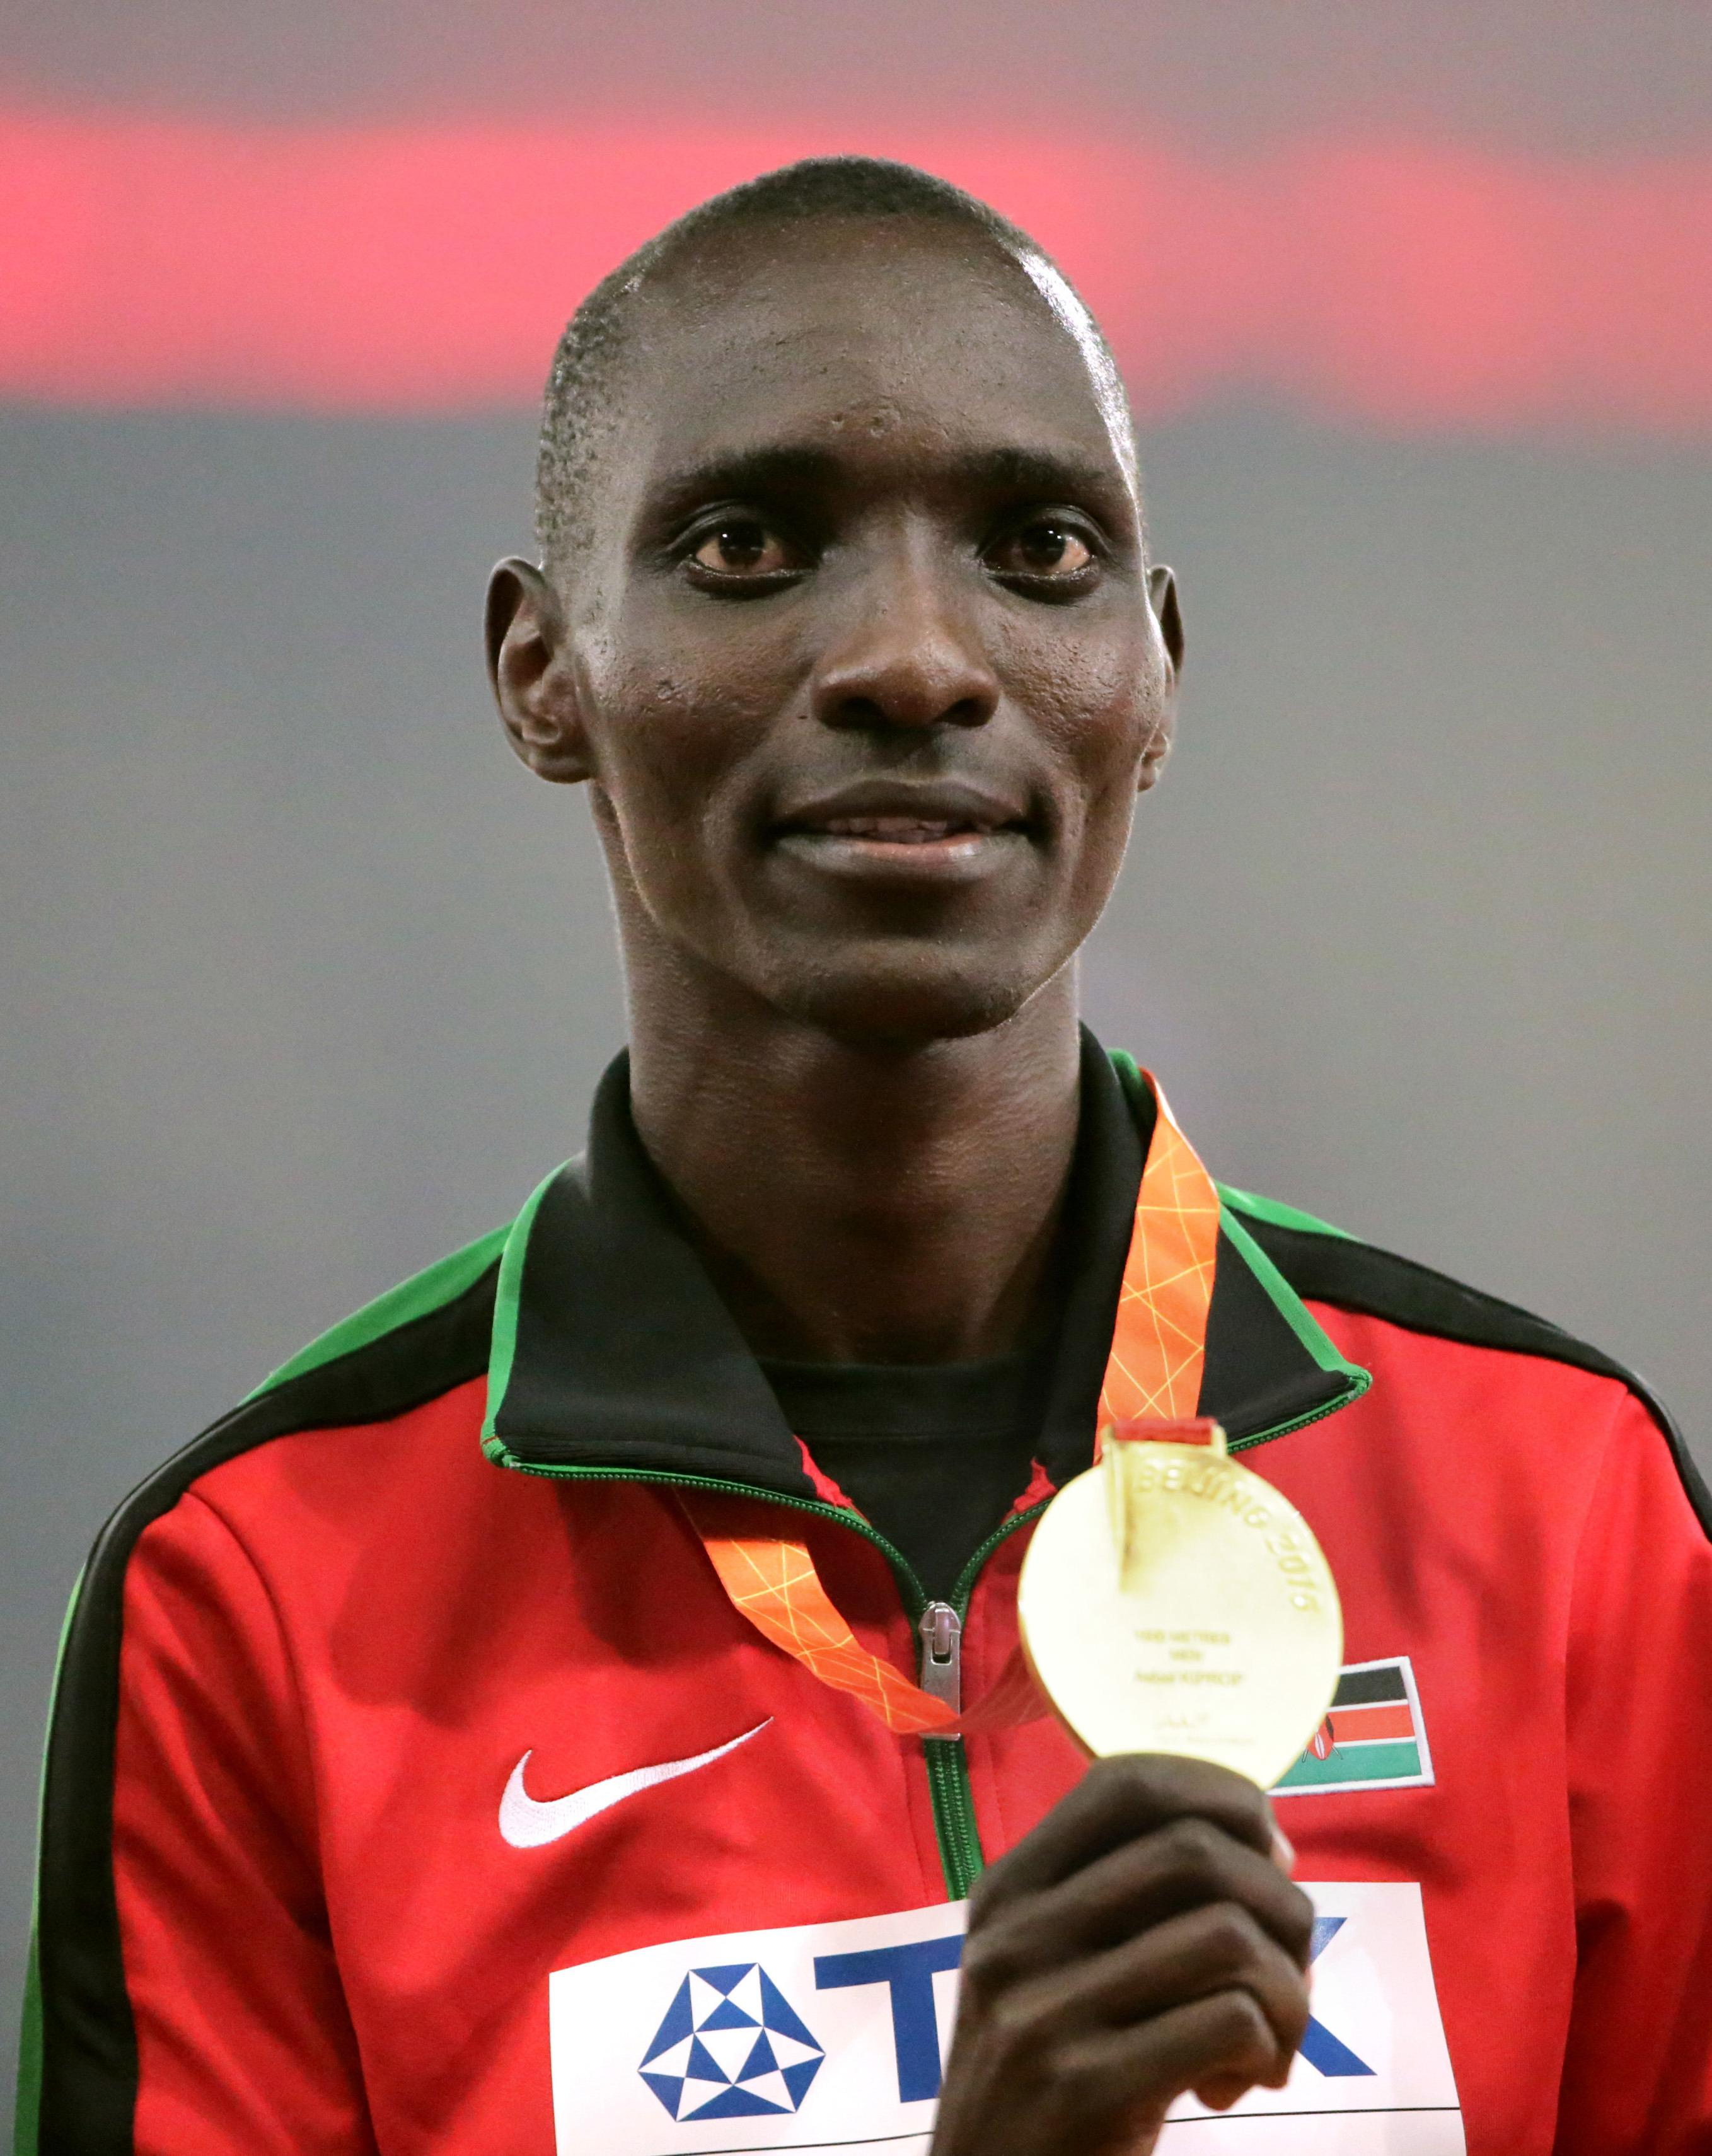 Asbel Kiprop revealed he paid drug testers because he thought the money was for tea or fuel